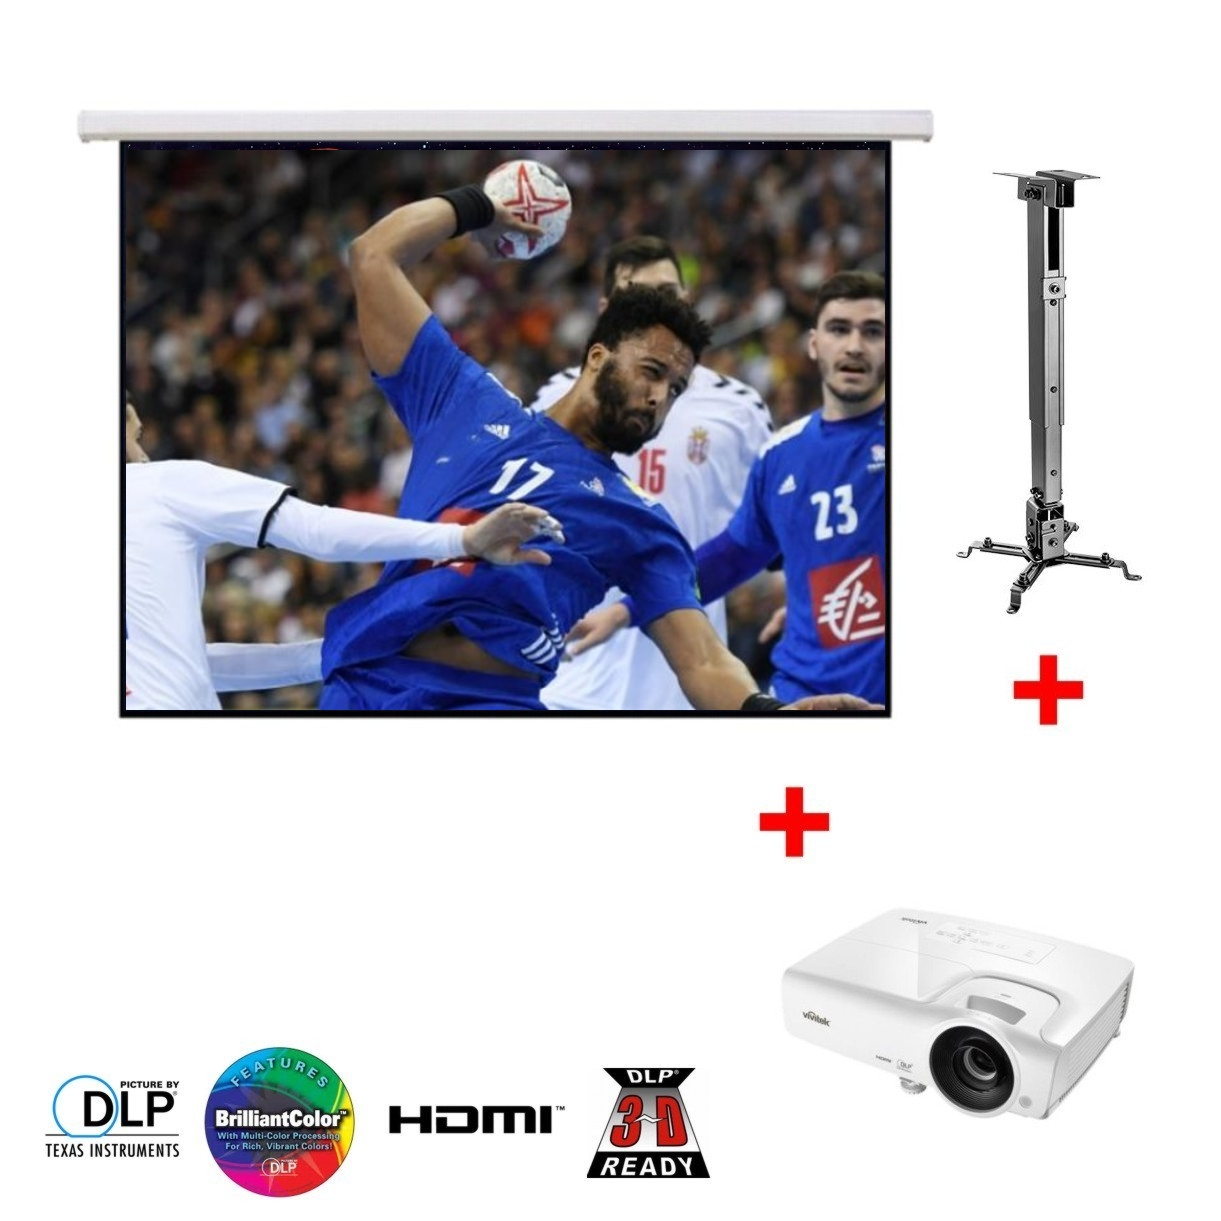 PACK VIDEO PROJECTION 1 x ECRAN MPS108C + 1 x DW265 + 1 SUPPORT PLAFOND